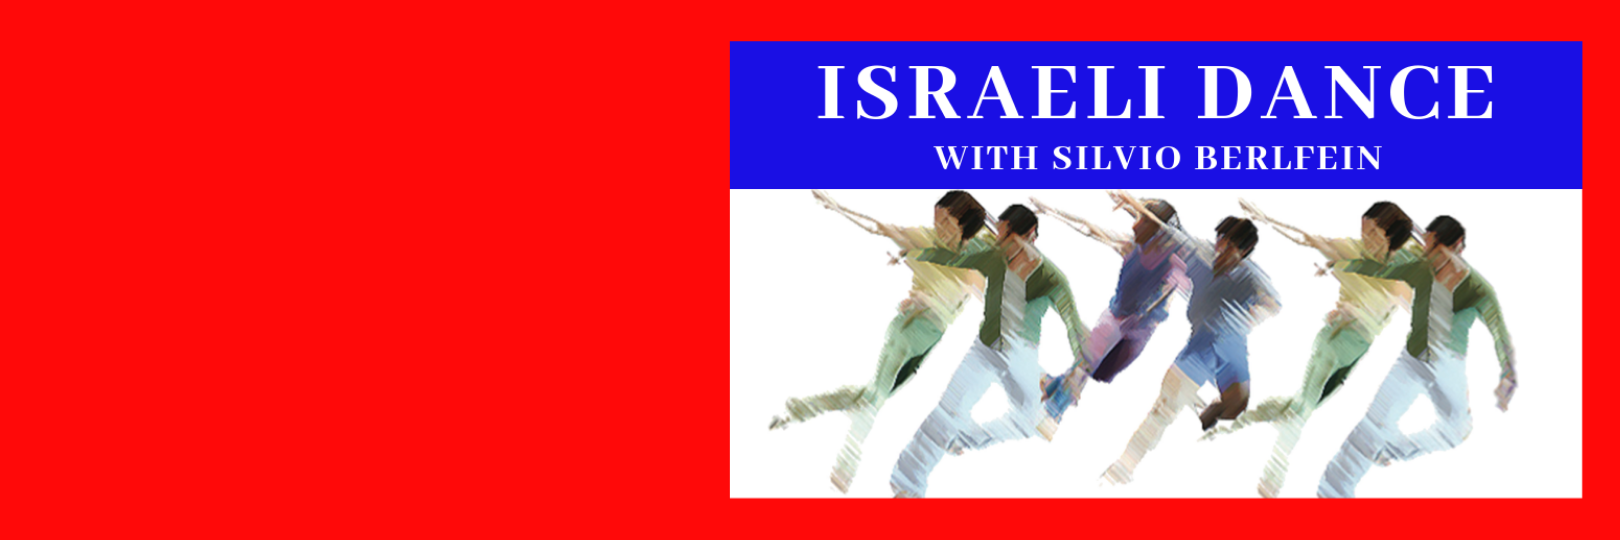 """<a href=""""/community/israeli-dancing""""                                     target="""""""">                                                                 <span class=""""slider_title"""">                                     Israeli Dance Class                                </span>                                                                 </a>                                                                                                                                                                                       <span class=""""slider_description"""">DANCERS OF ALL LEVELS WELCOME, CLASS HELD EVERY TUESDAY</span>                                                                                     <a href=""""/community/israeli-dancing"""" class=""""slider_link""""                             target="""""""">                             More Details                            </a>"""